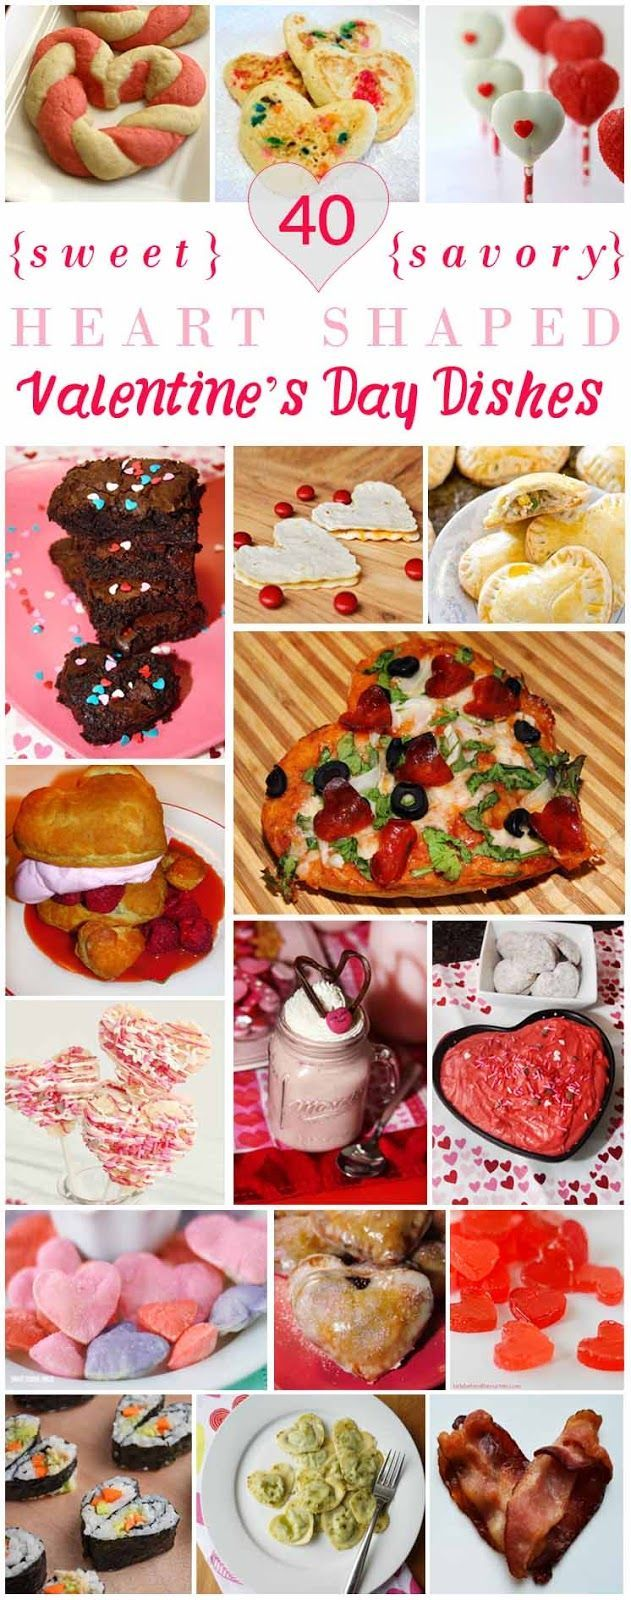 40 Sweet and Savory Heart Shaped Valentine's Dishes